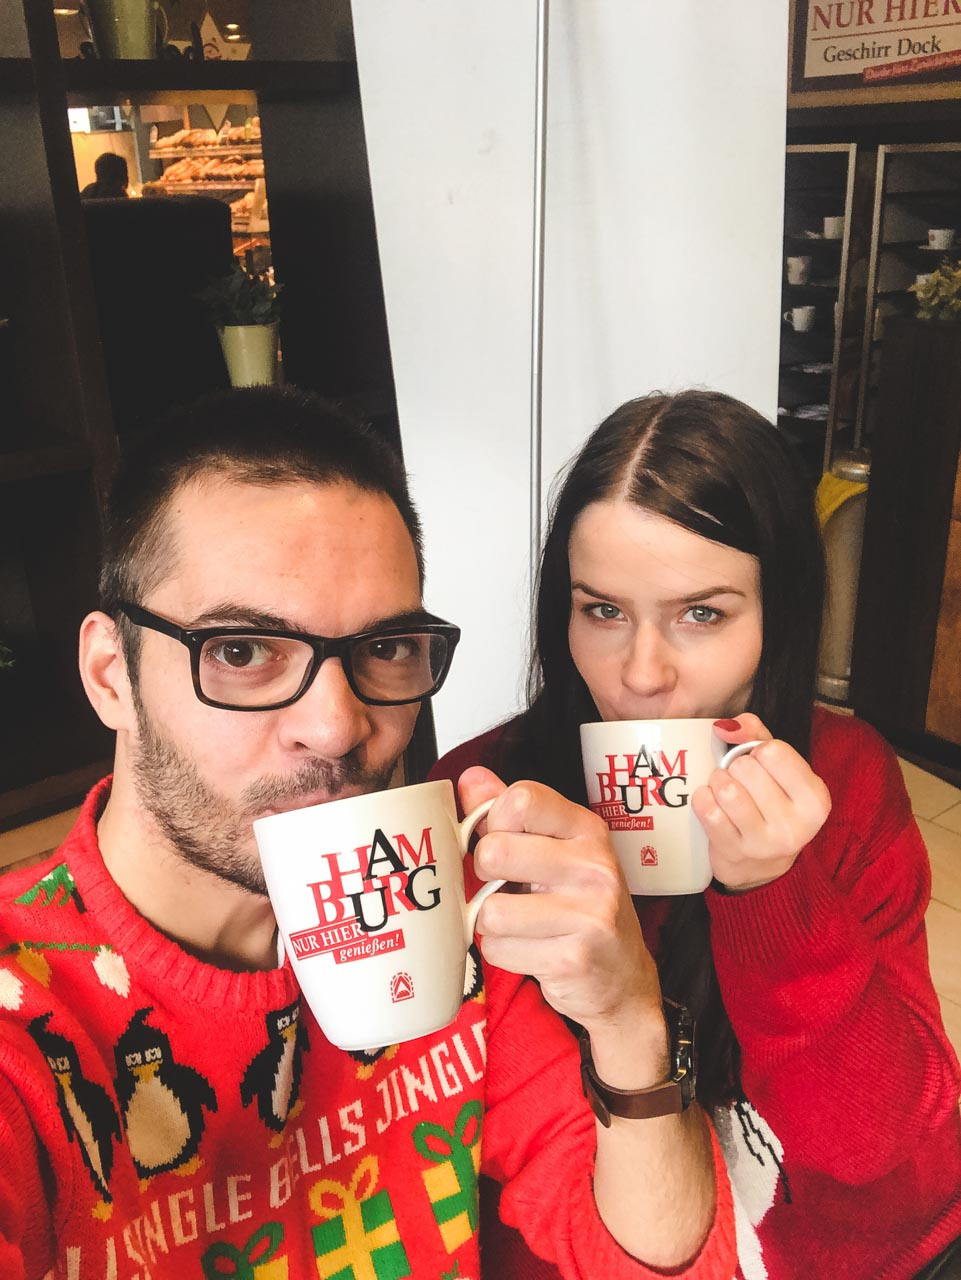 Two people drinking coffee wearing Christmas jumpers